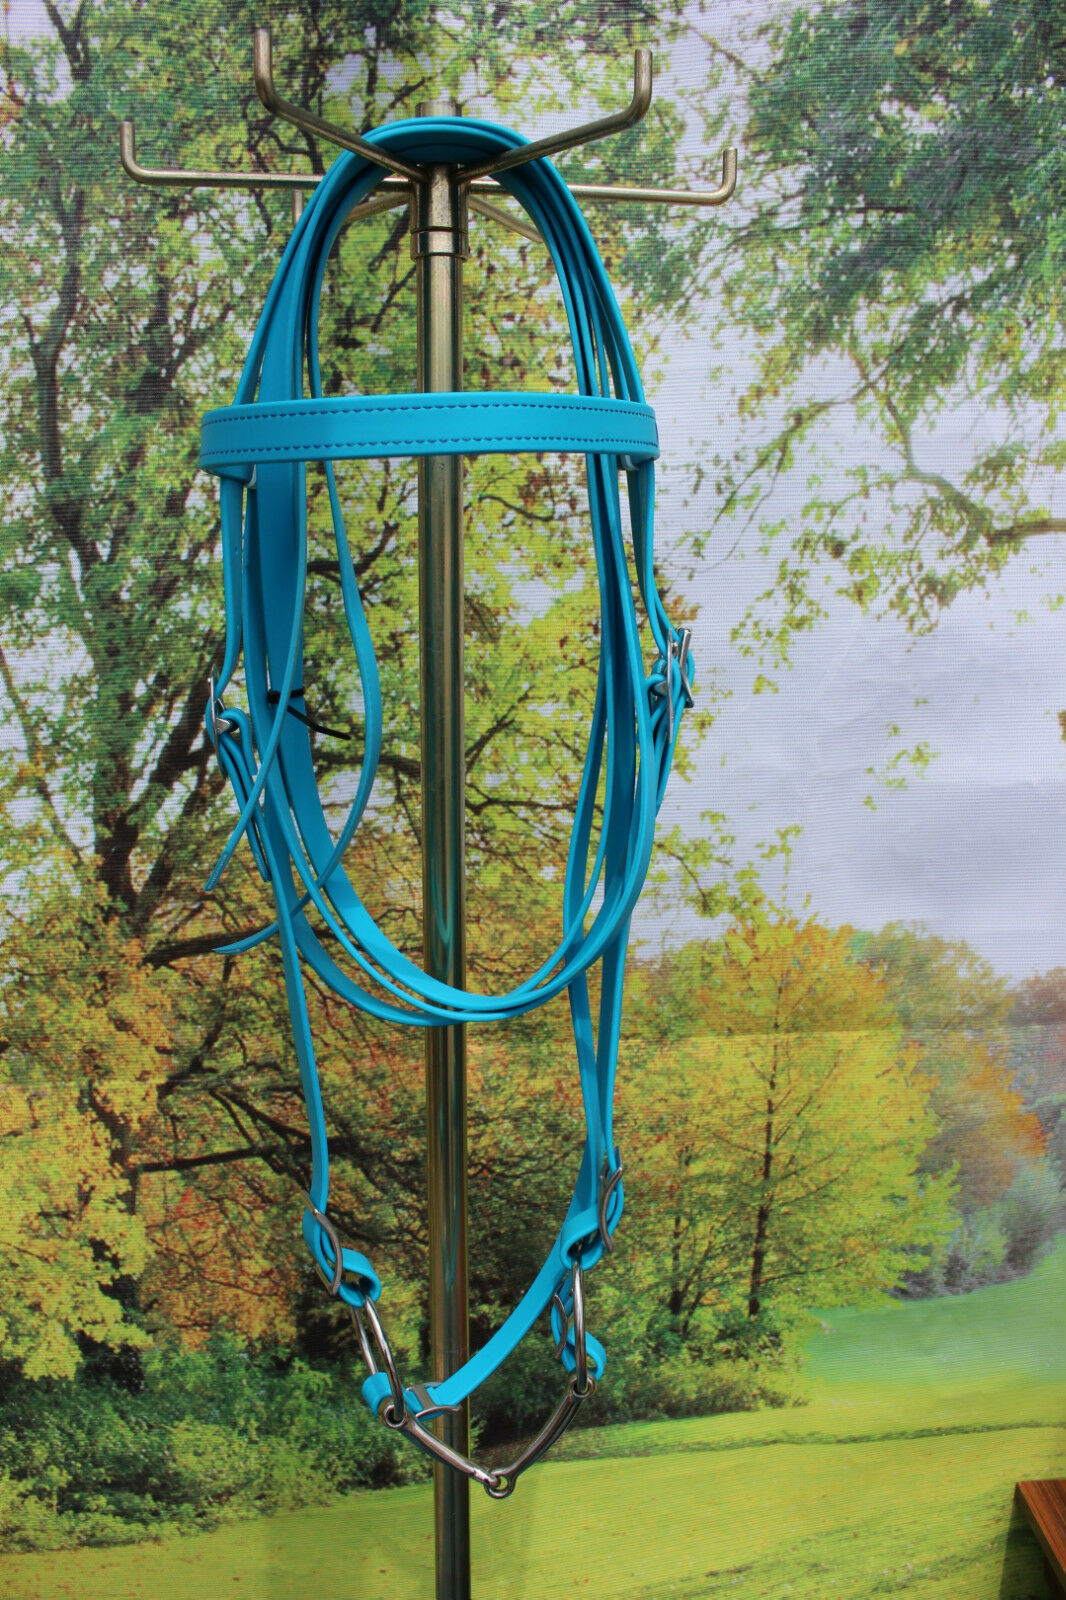 Draft horse beta biothane riding bridle with 6  O ring snaffle bit blueE USA made